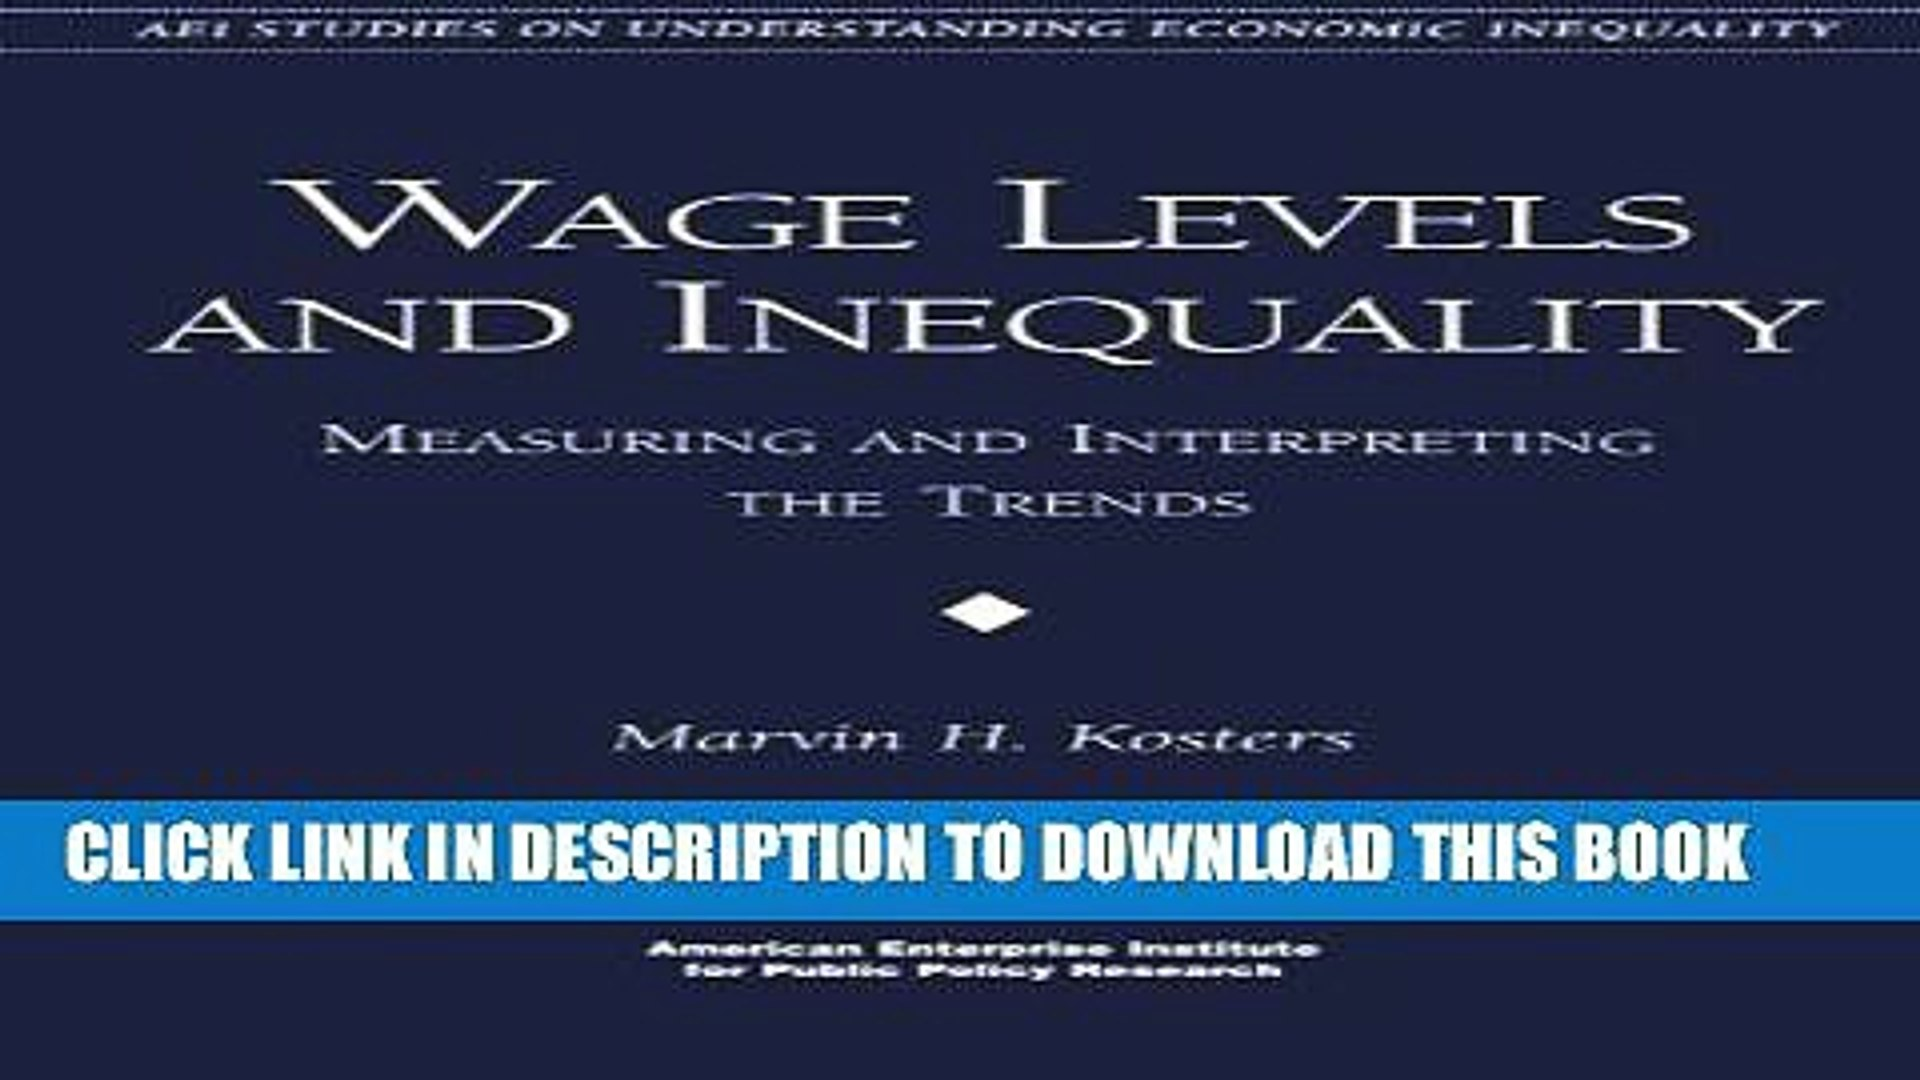 New Book Wage Levels and Inequality:: Measuring and Interpreting the Trends (AEI Studies on